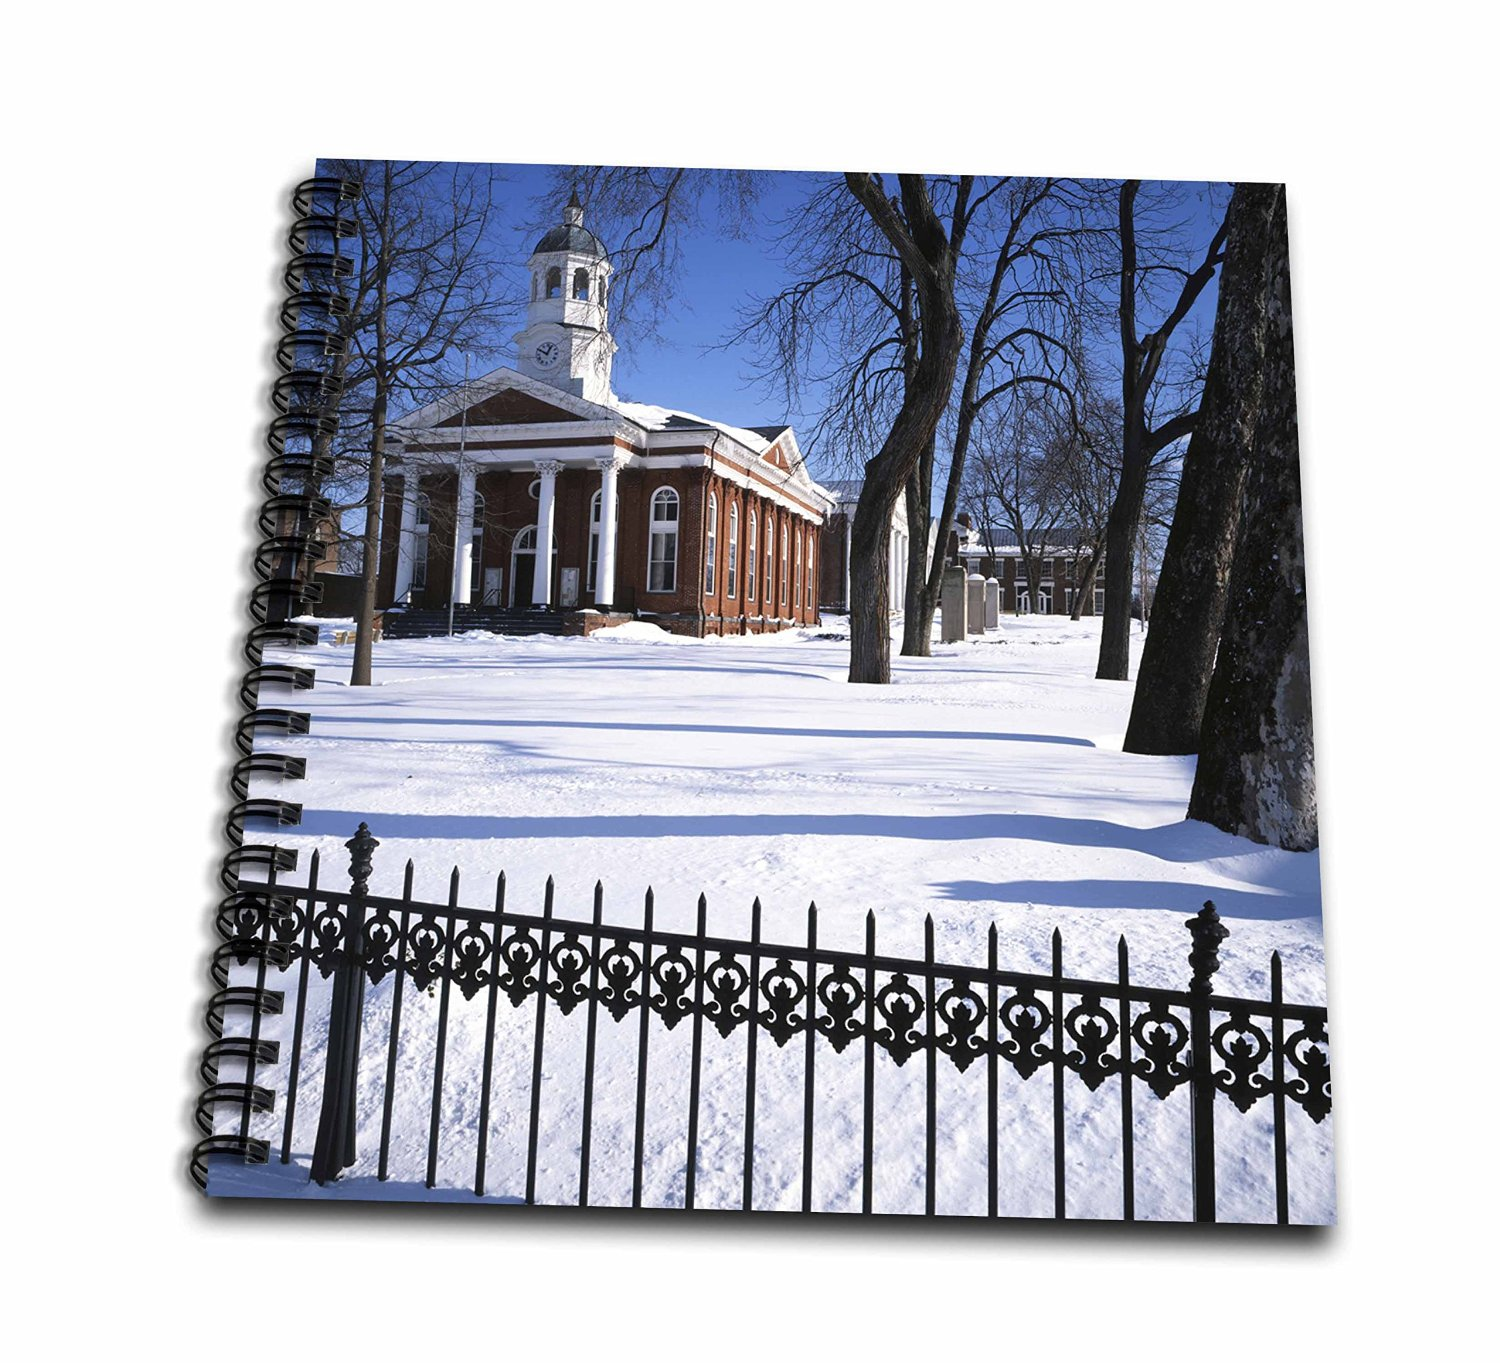 Danita Delimont - Charles Gurche - Courthouse - USA, Virginia, Leesburg, Loudoun County Courthouse. - Memory Book 12 x 12 inch (db_189697_2)